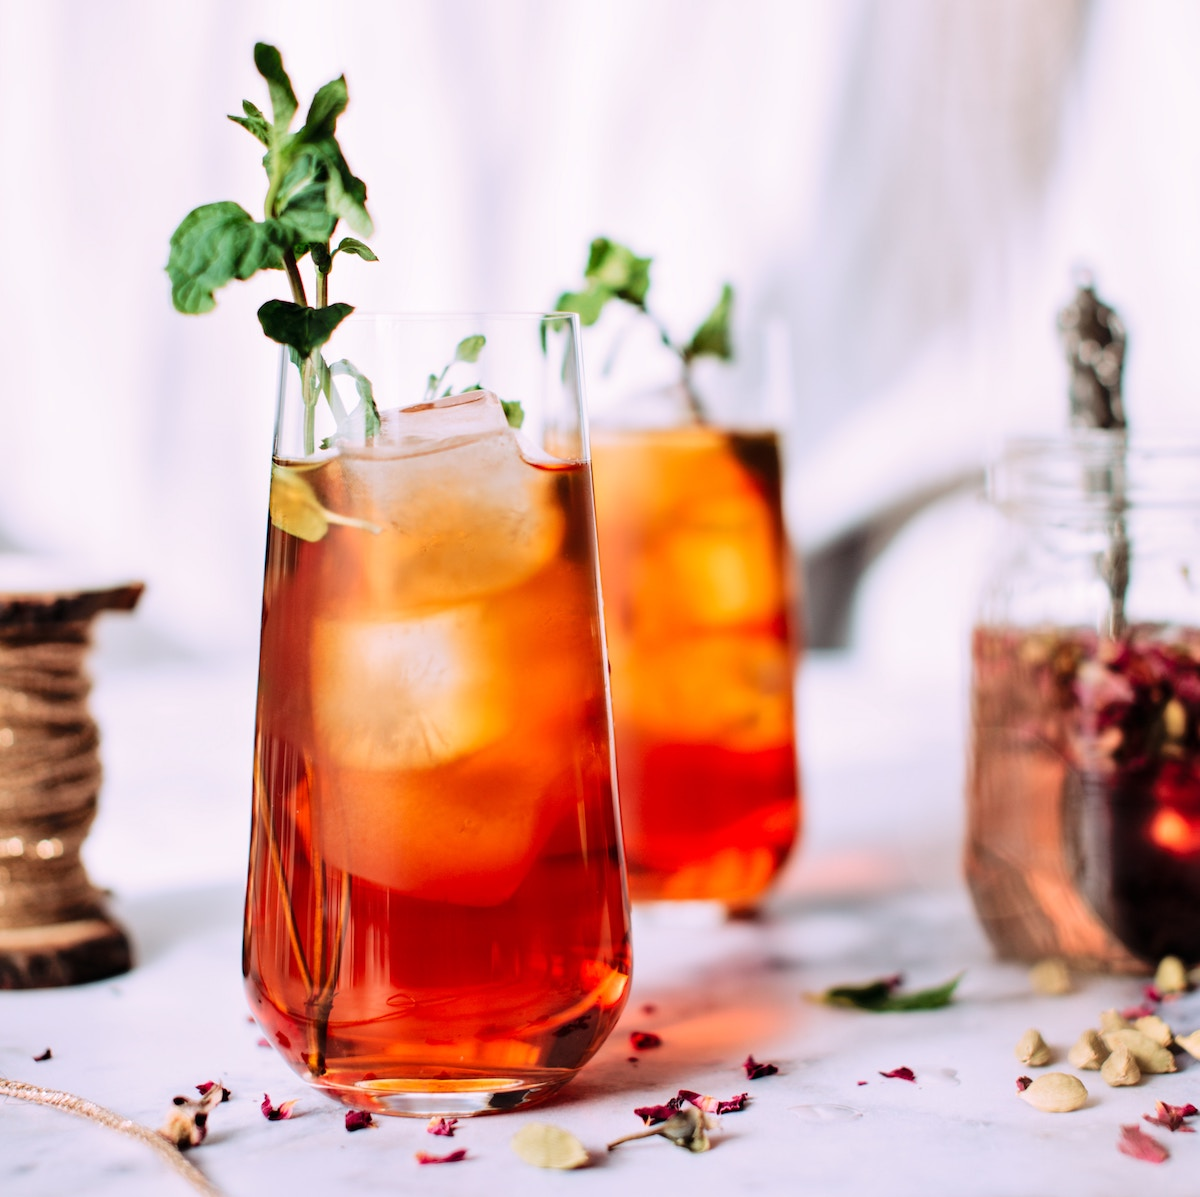 glass of iced tea with a sprig of mint